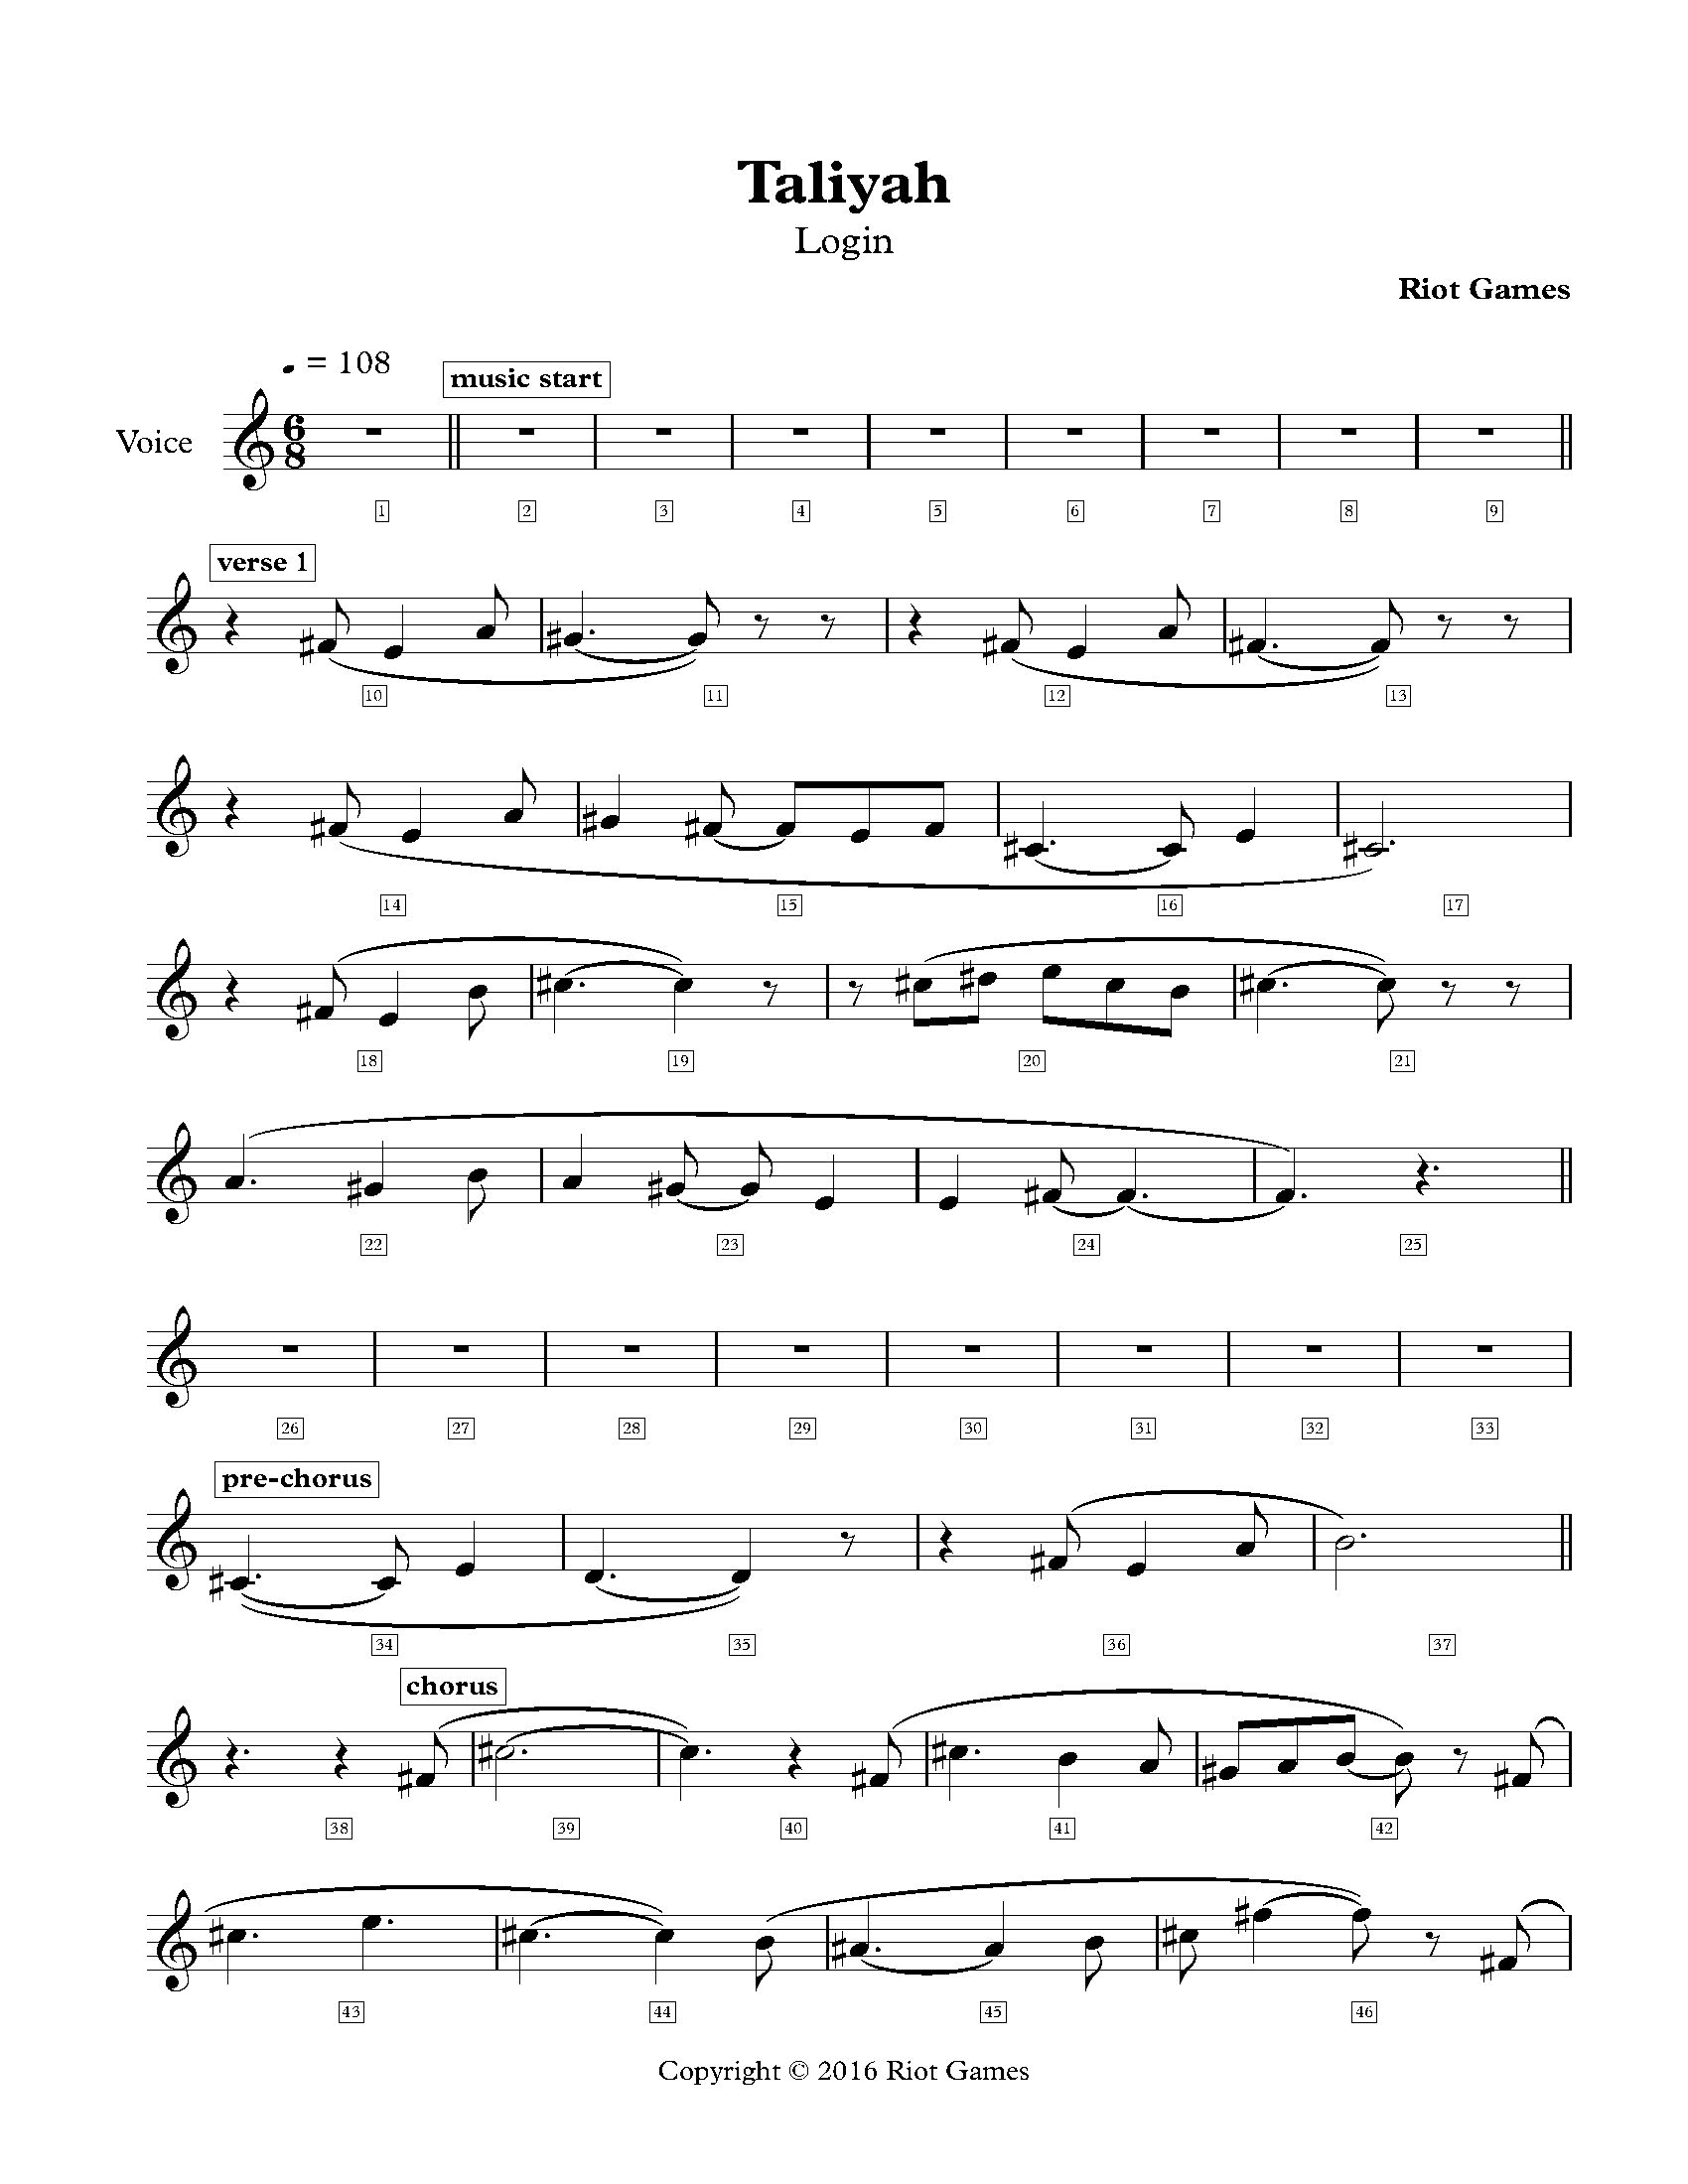 Taliyah_Notation_Vocal_Page_1